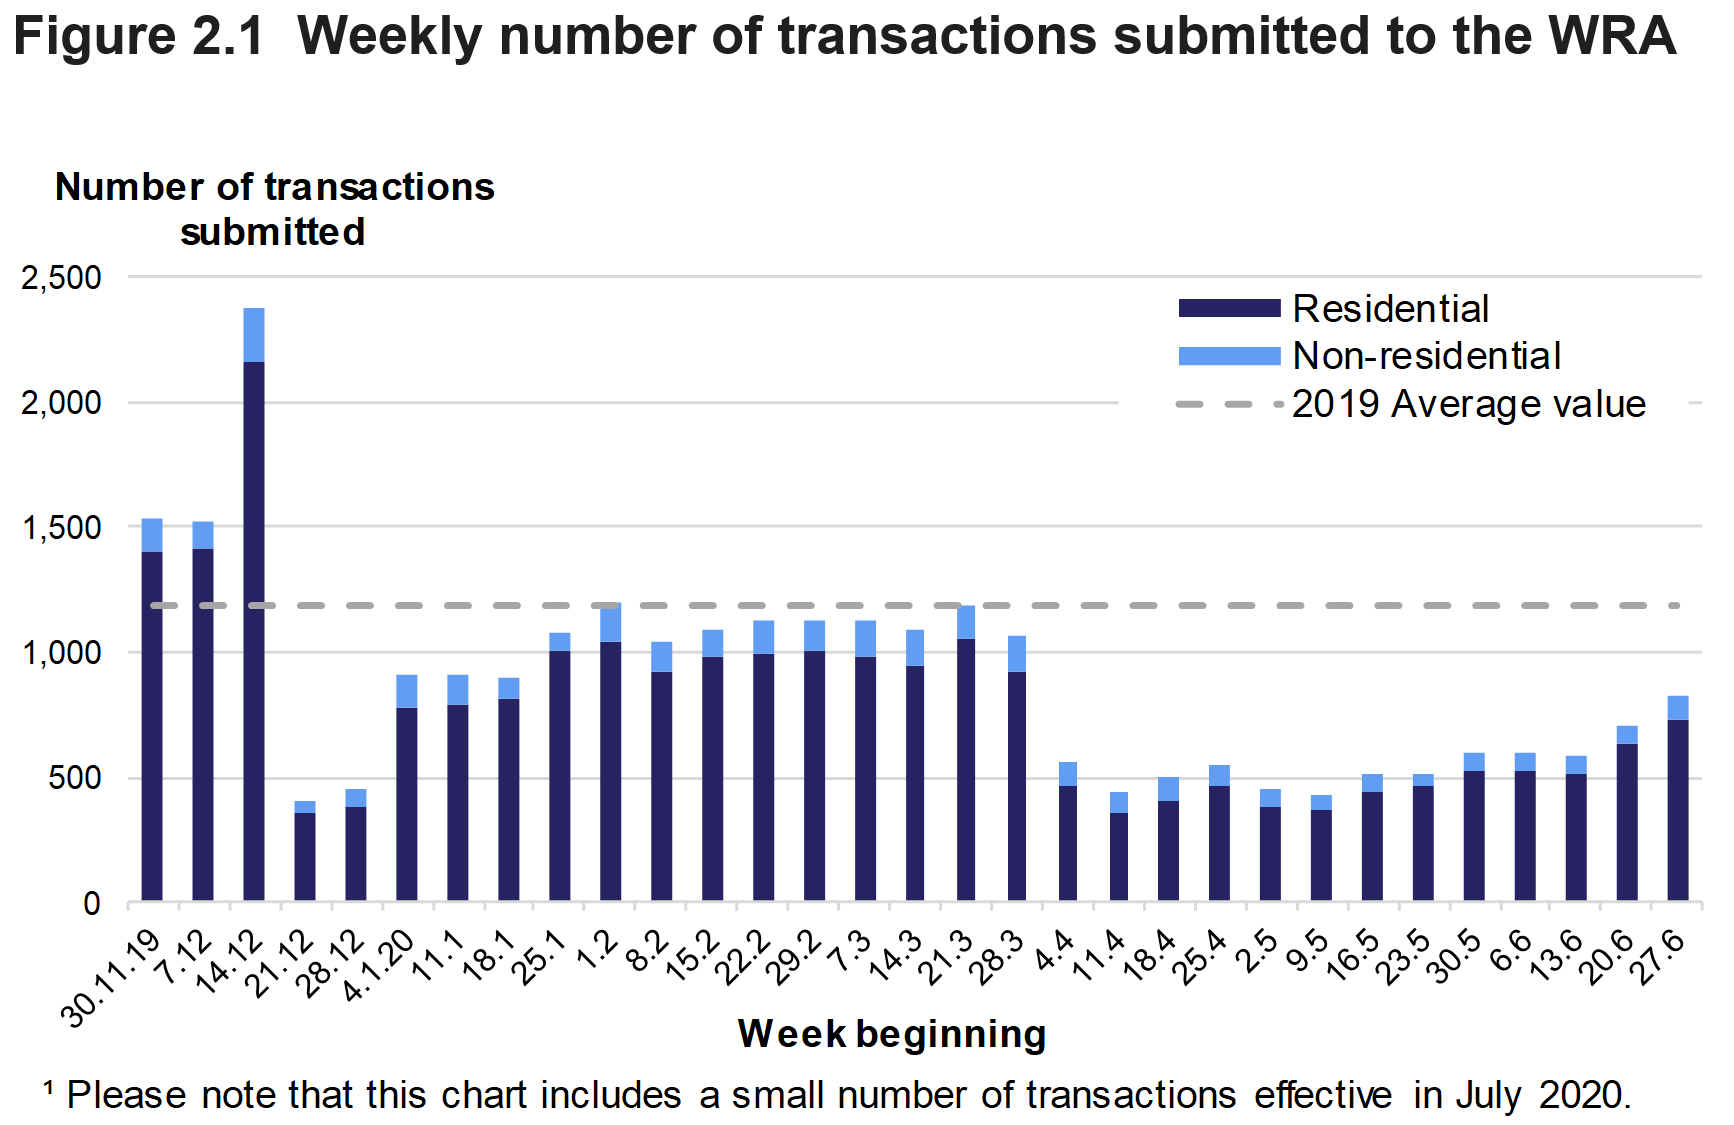 Figure 2.1 shows the number of residential and non-residential transactions submitted to the WRA each week from December 2019 to June 2020. Please note that this chart includes a small number of transactions effective in July 2020.